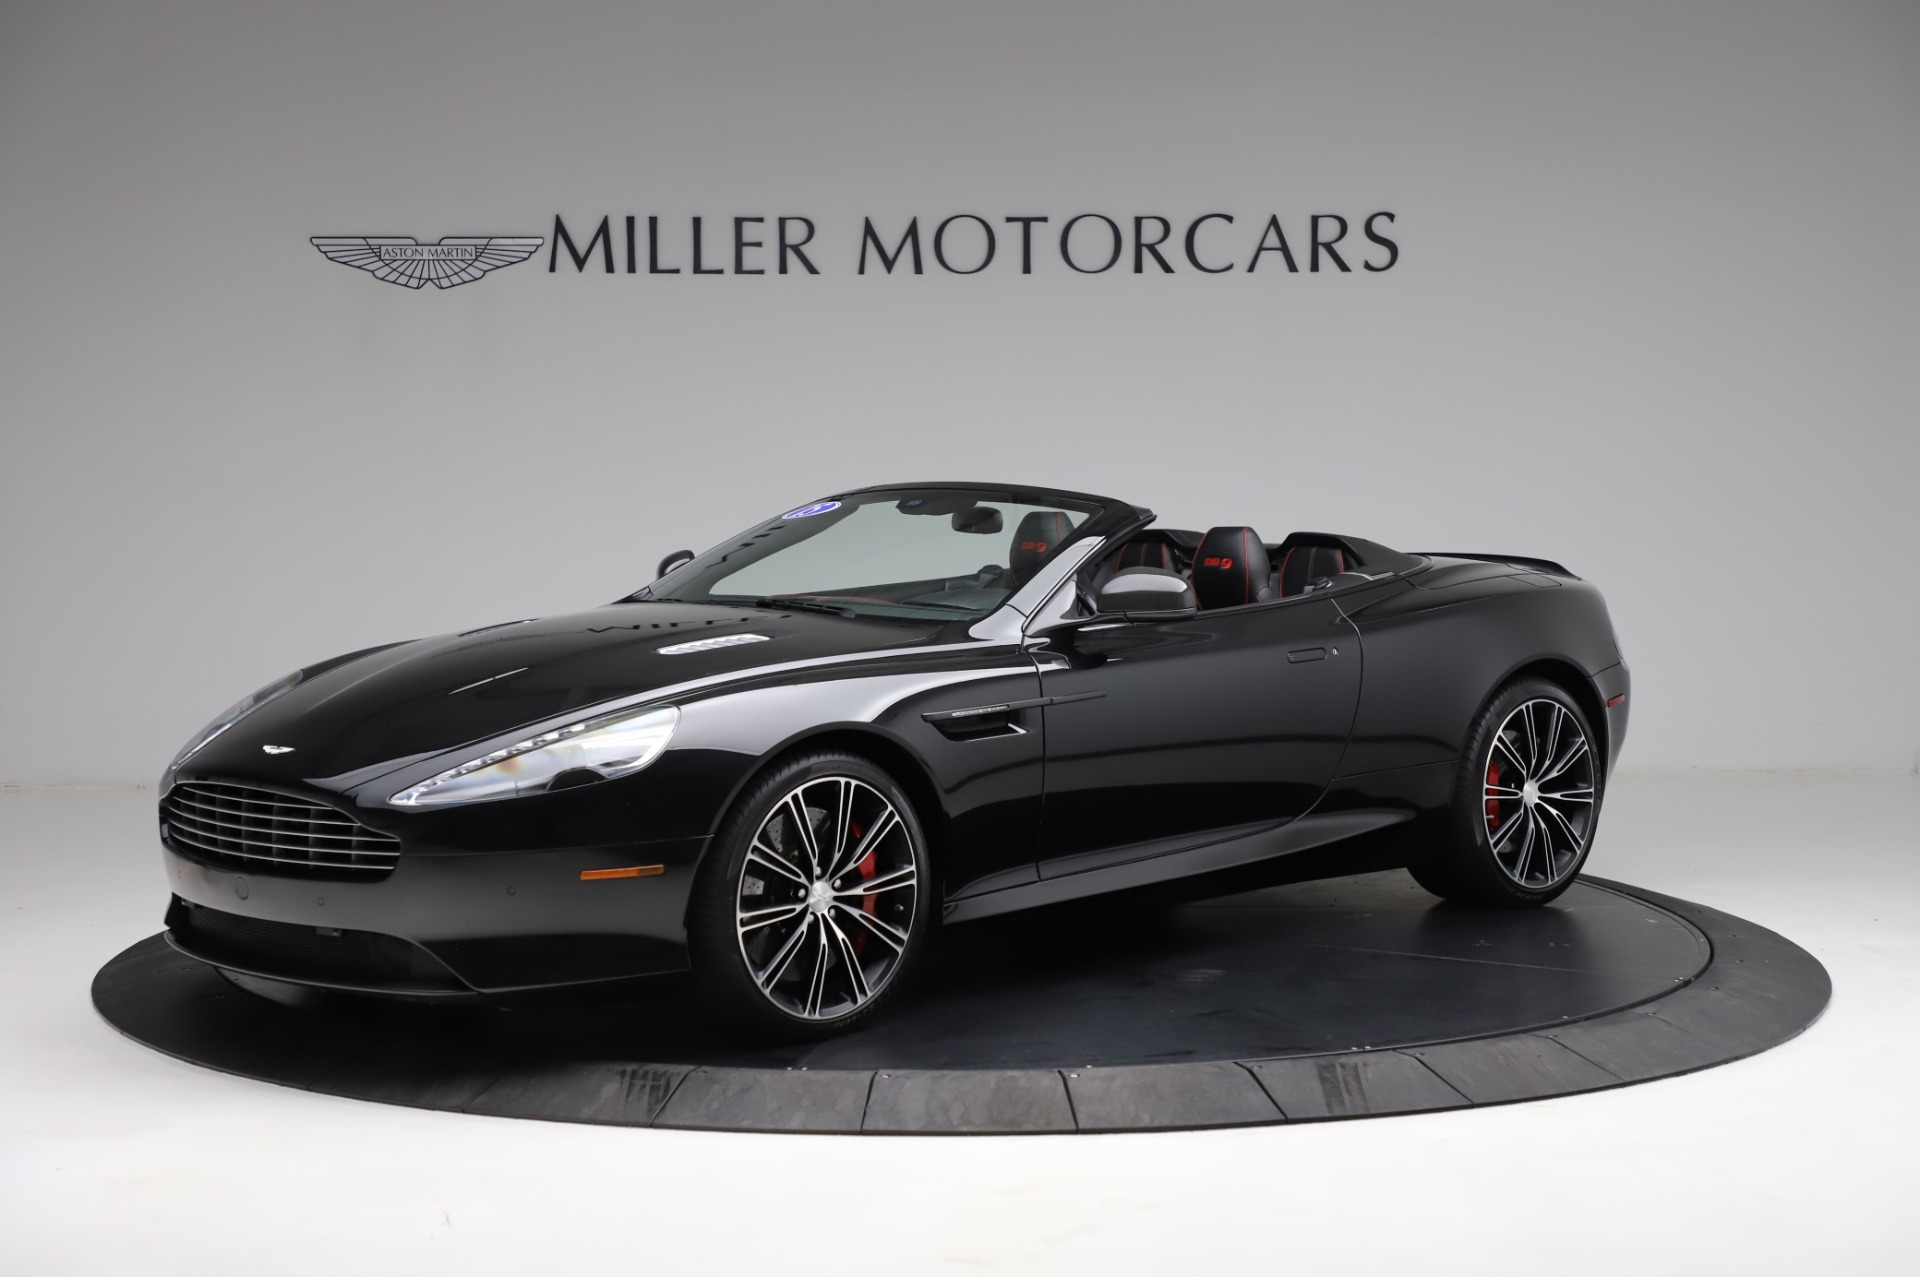 Used 2015 Aston Martin DB9 Carbon Edition Volante For Sale In Westport, CT 1919_main